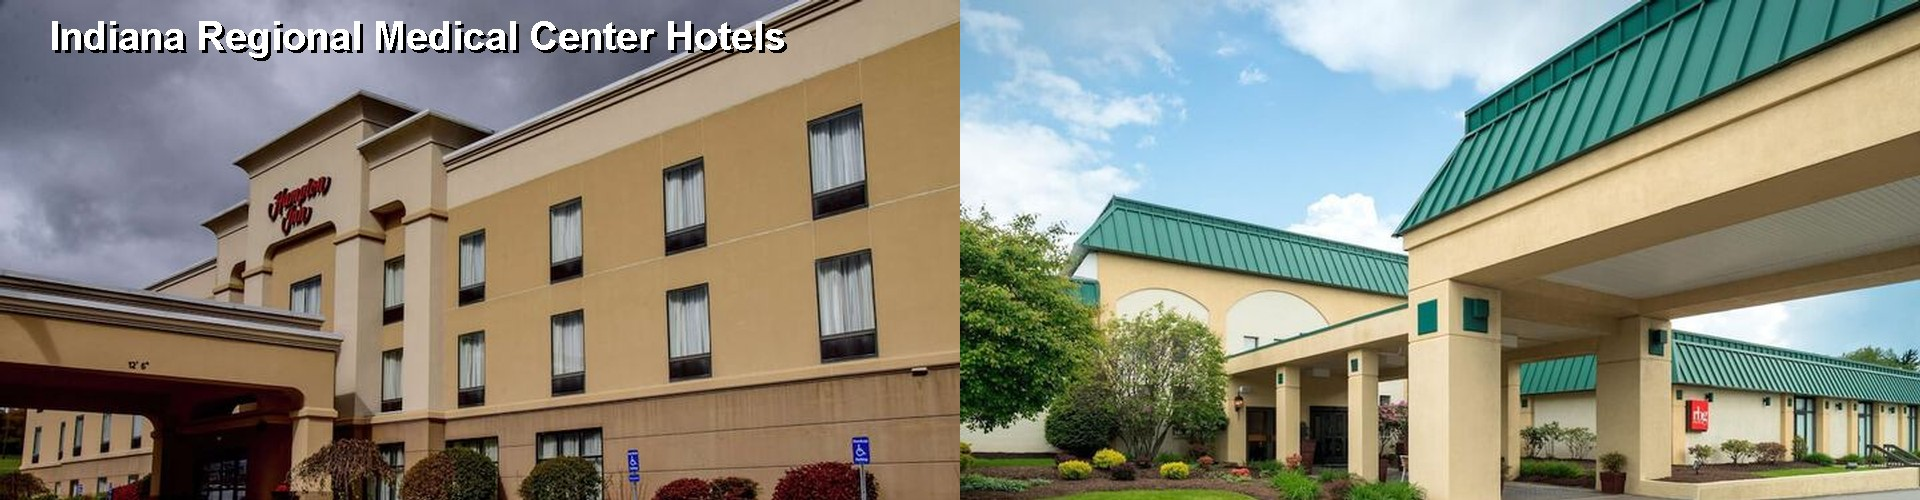 5 Best Hotels Near Indiana Regional Medical Center